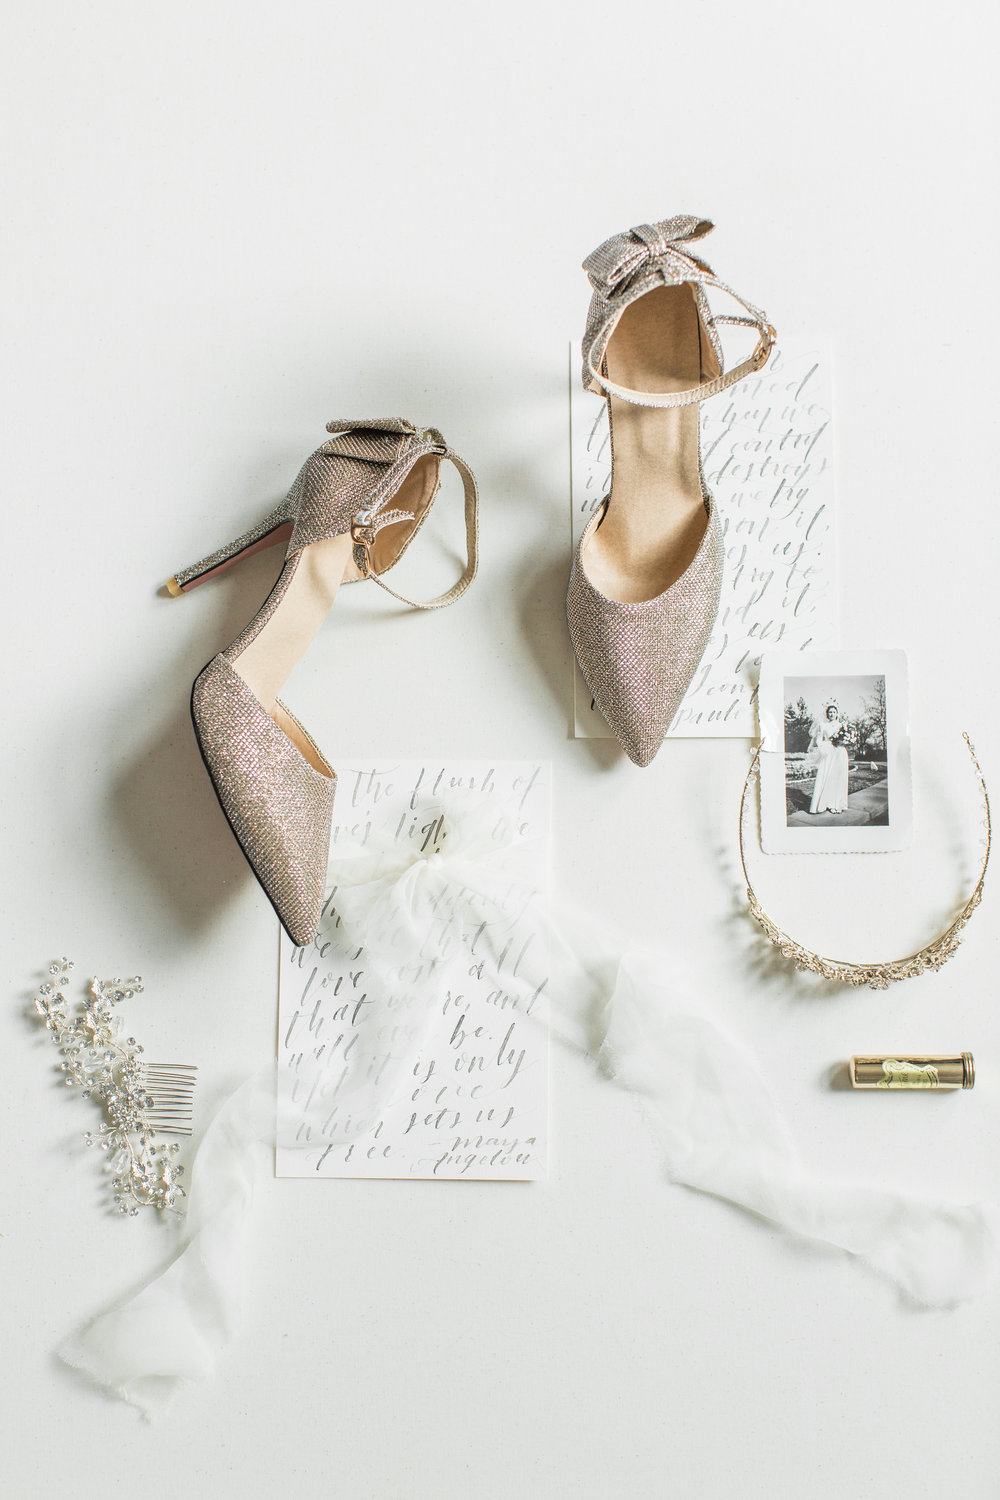 Bridal Shoes from Michelle's Consignment Boutique    Suites below by Line Ave. Calligraphy